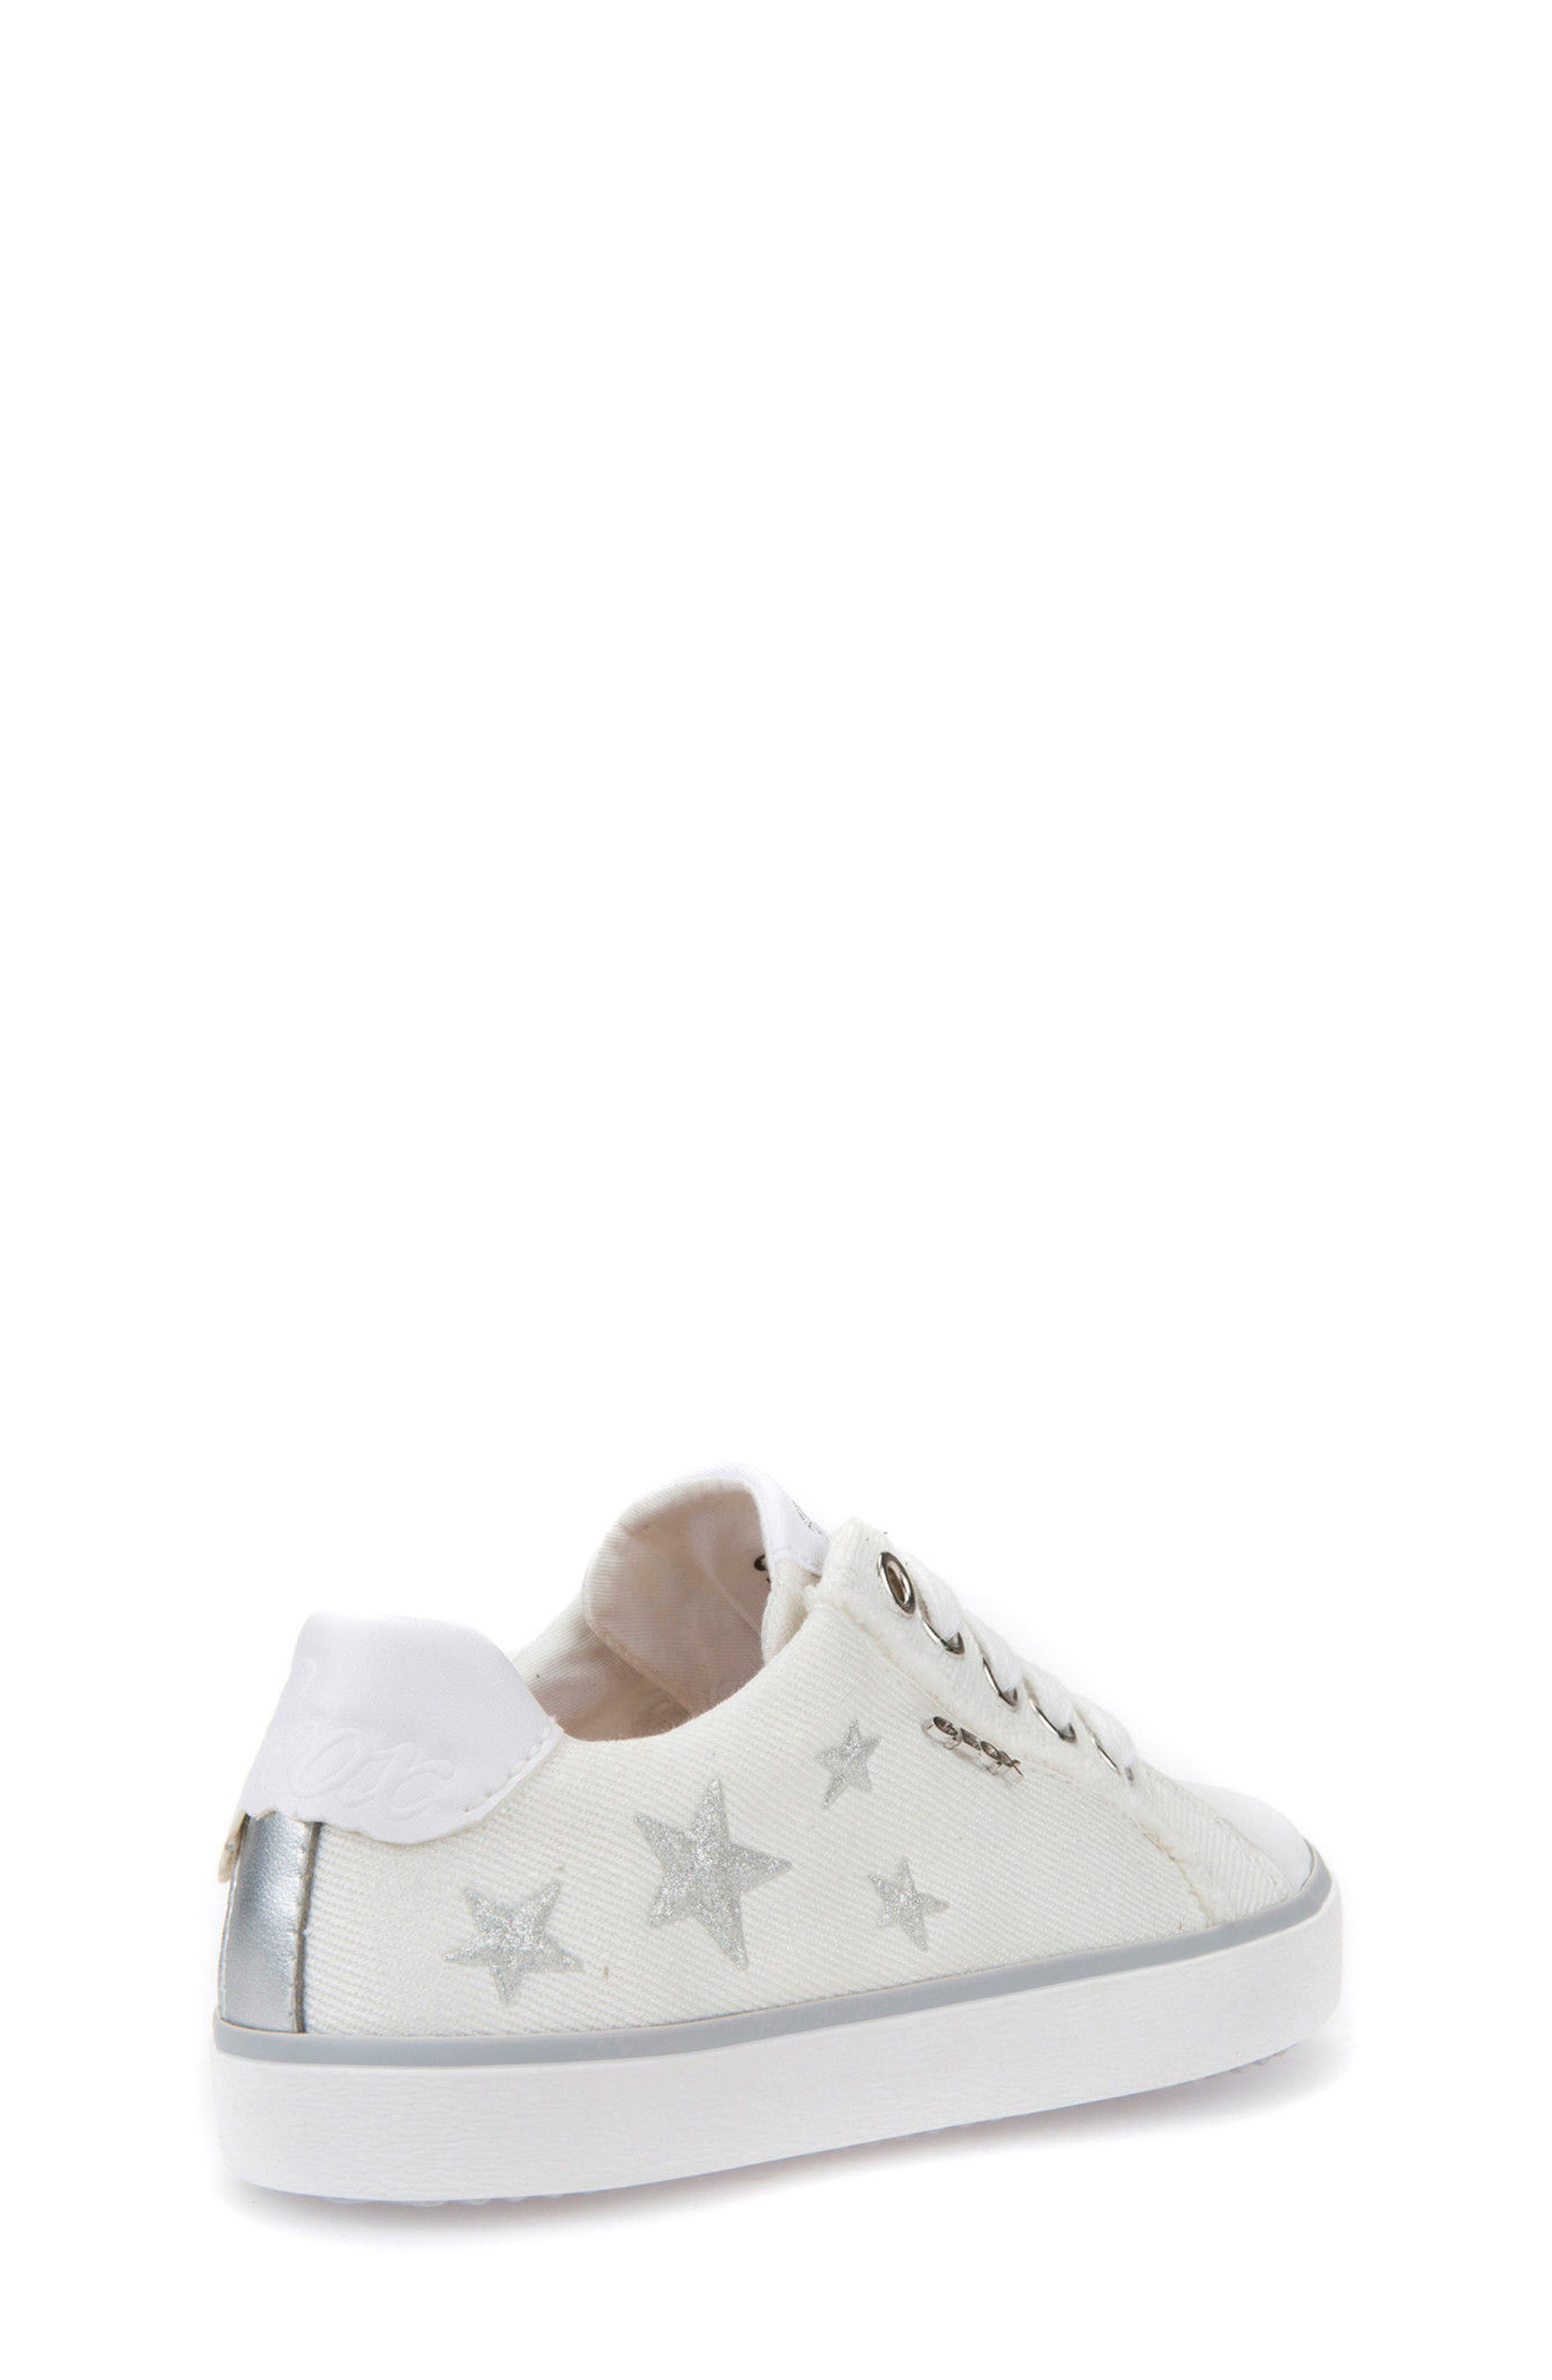 Kilwi Low Top Sneaker,                             Alternate thumbnail 2, color,                             WHITE